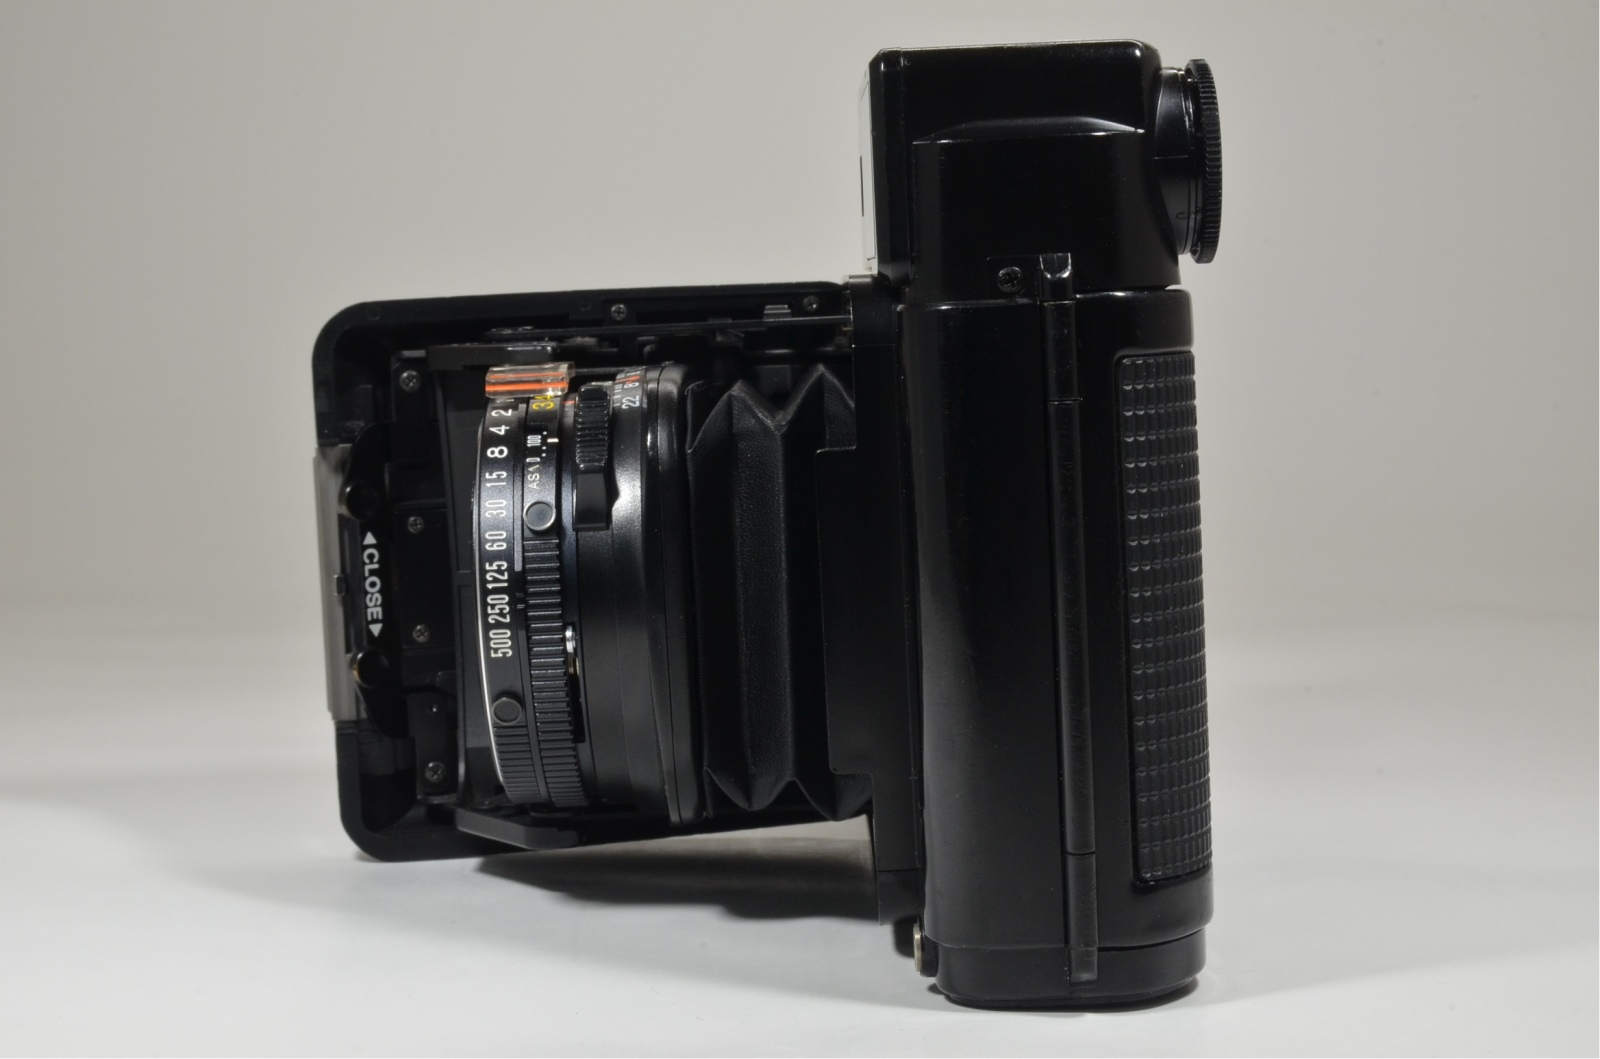 fujifilm fujica gs645 film camera 75mm f3.4 from japan